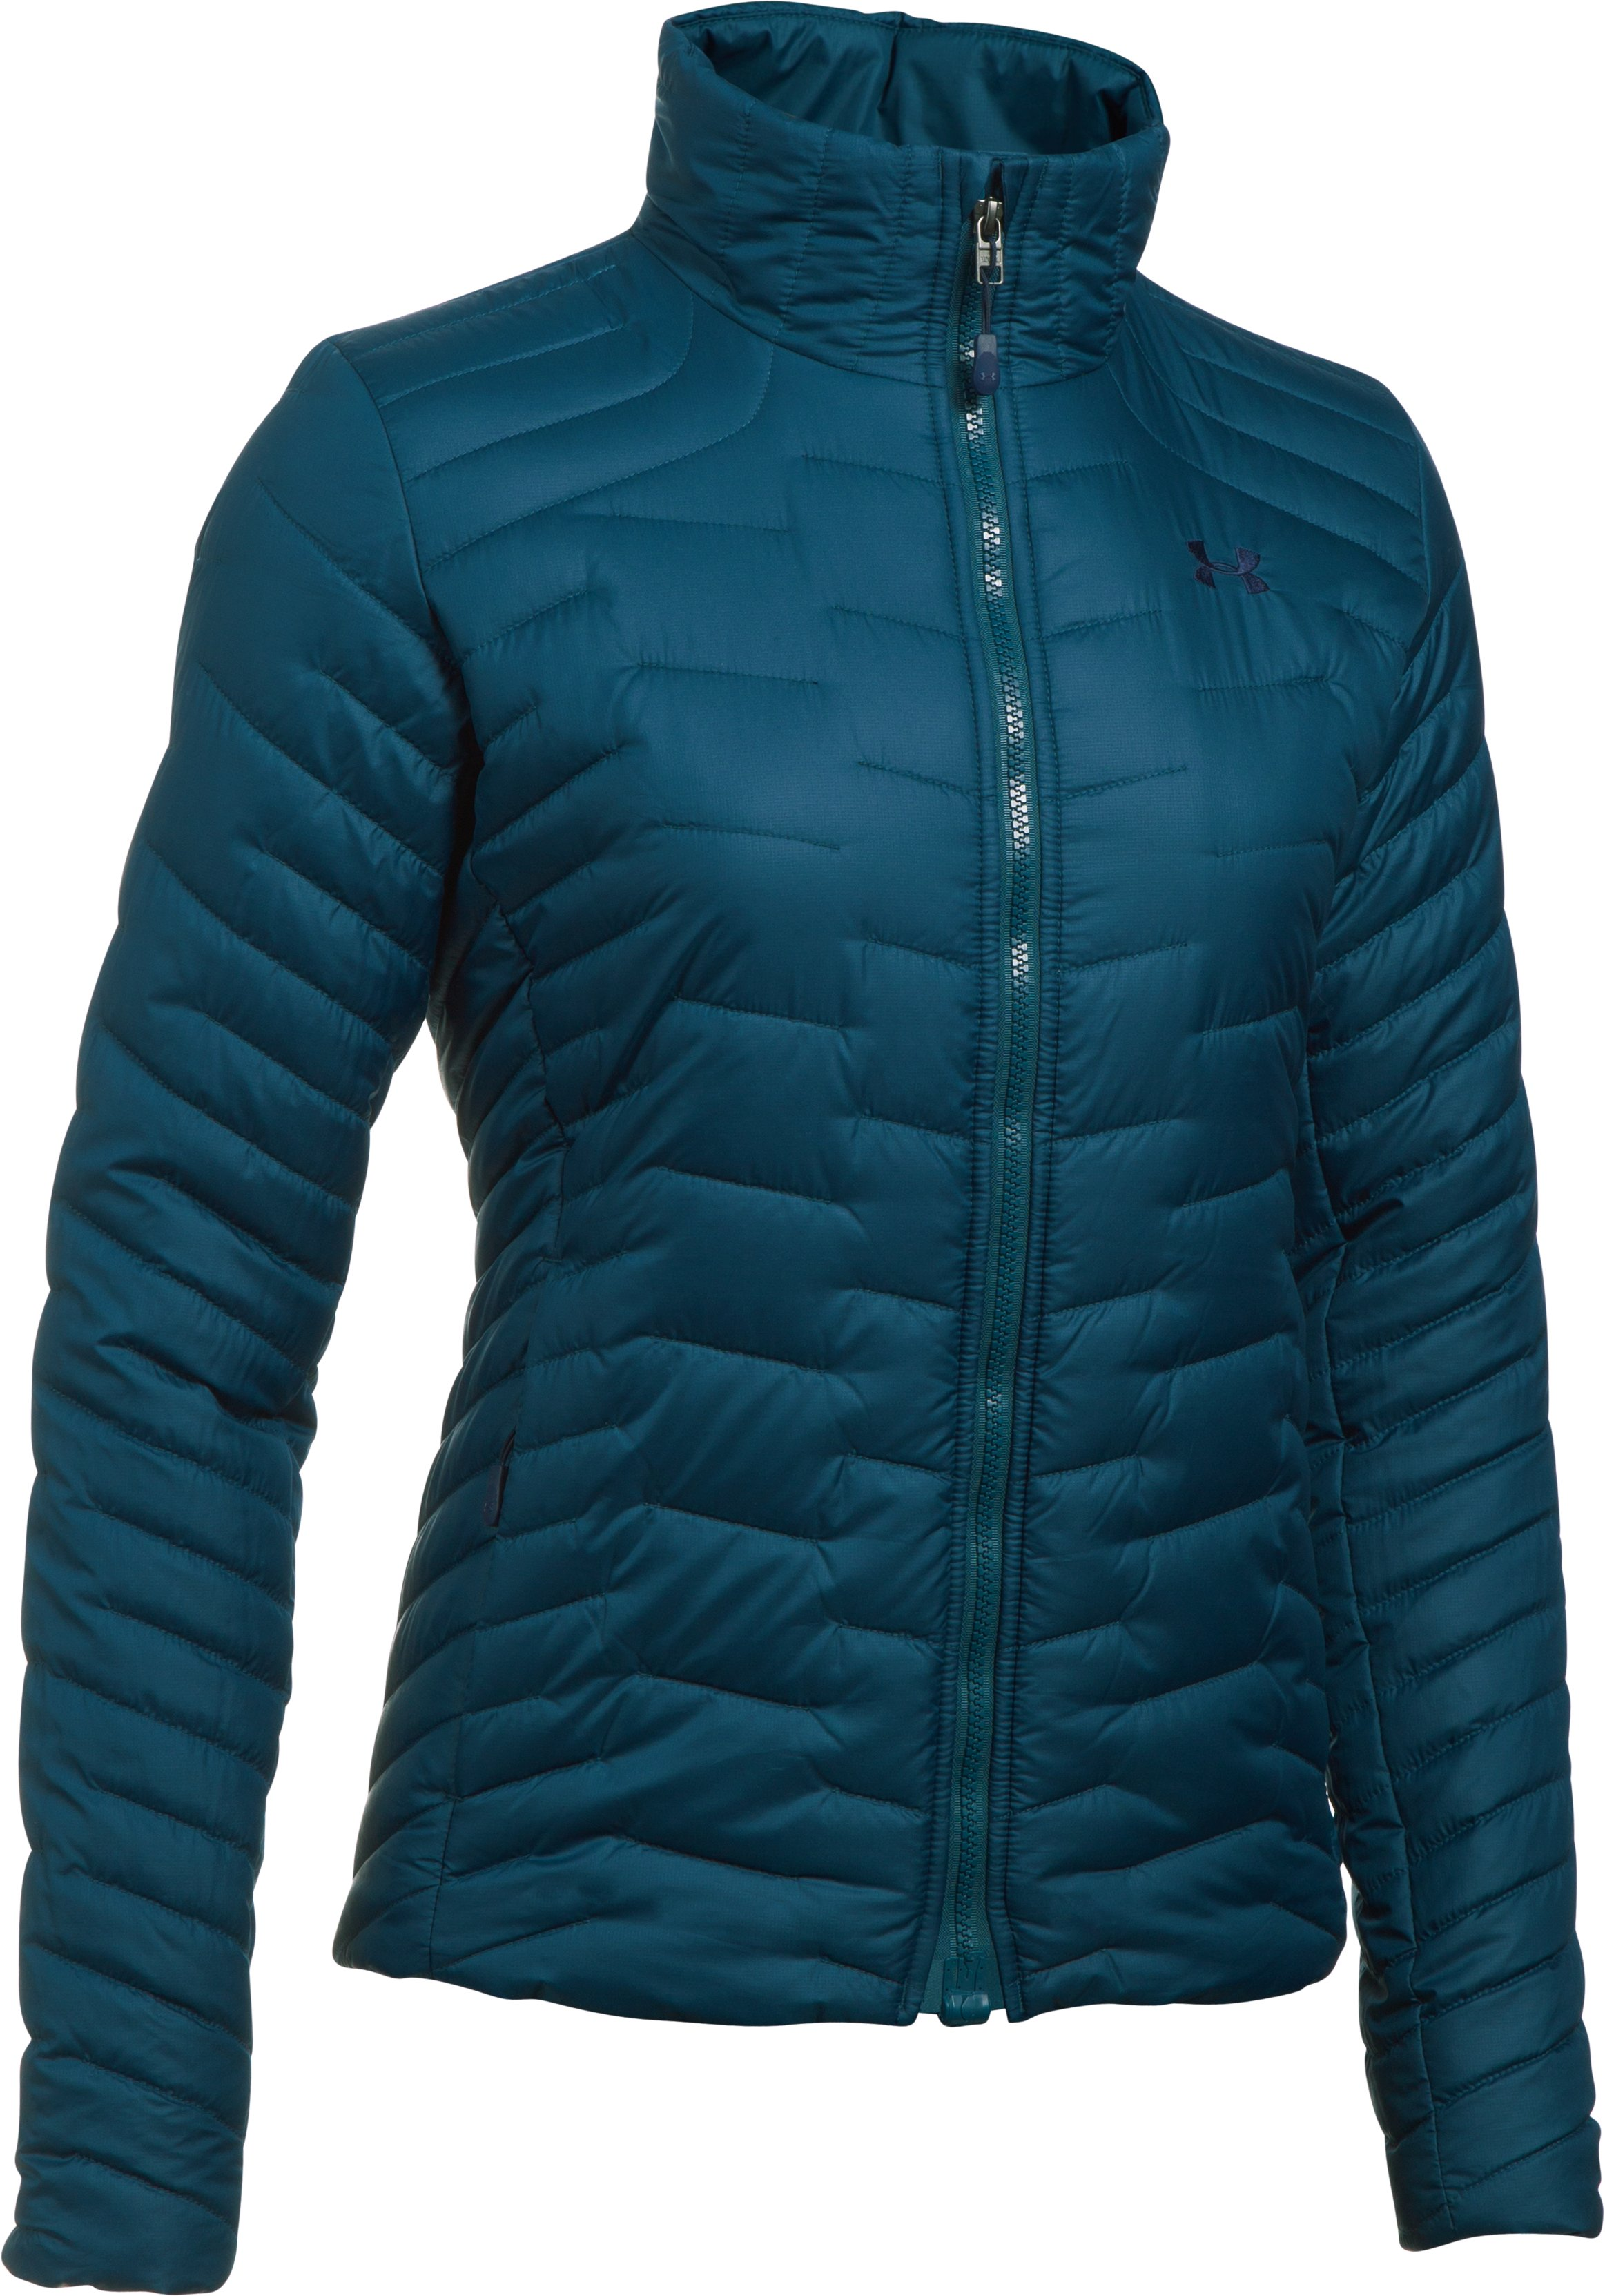 Women's ColdGear® Reactor Jacket, TRUE INK,